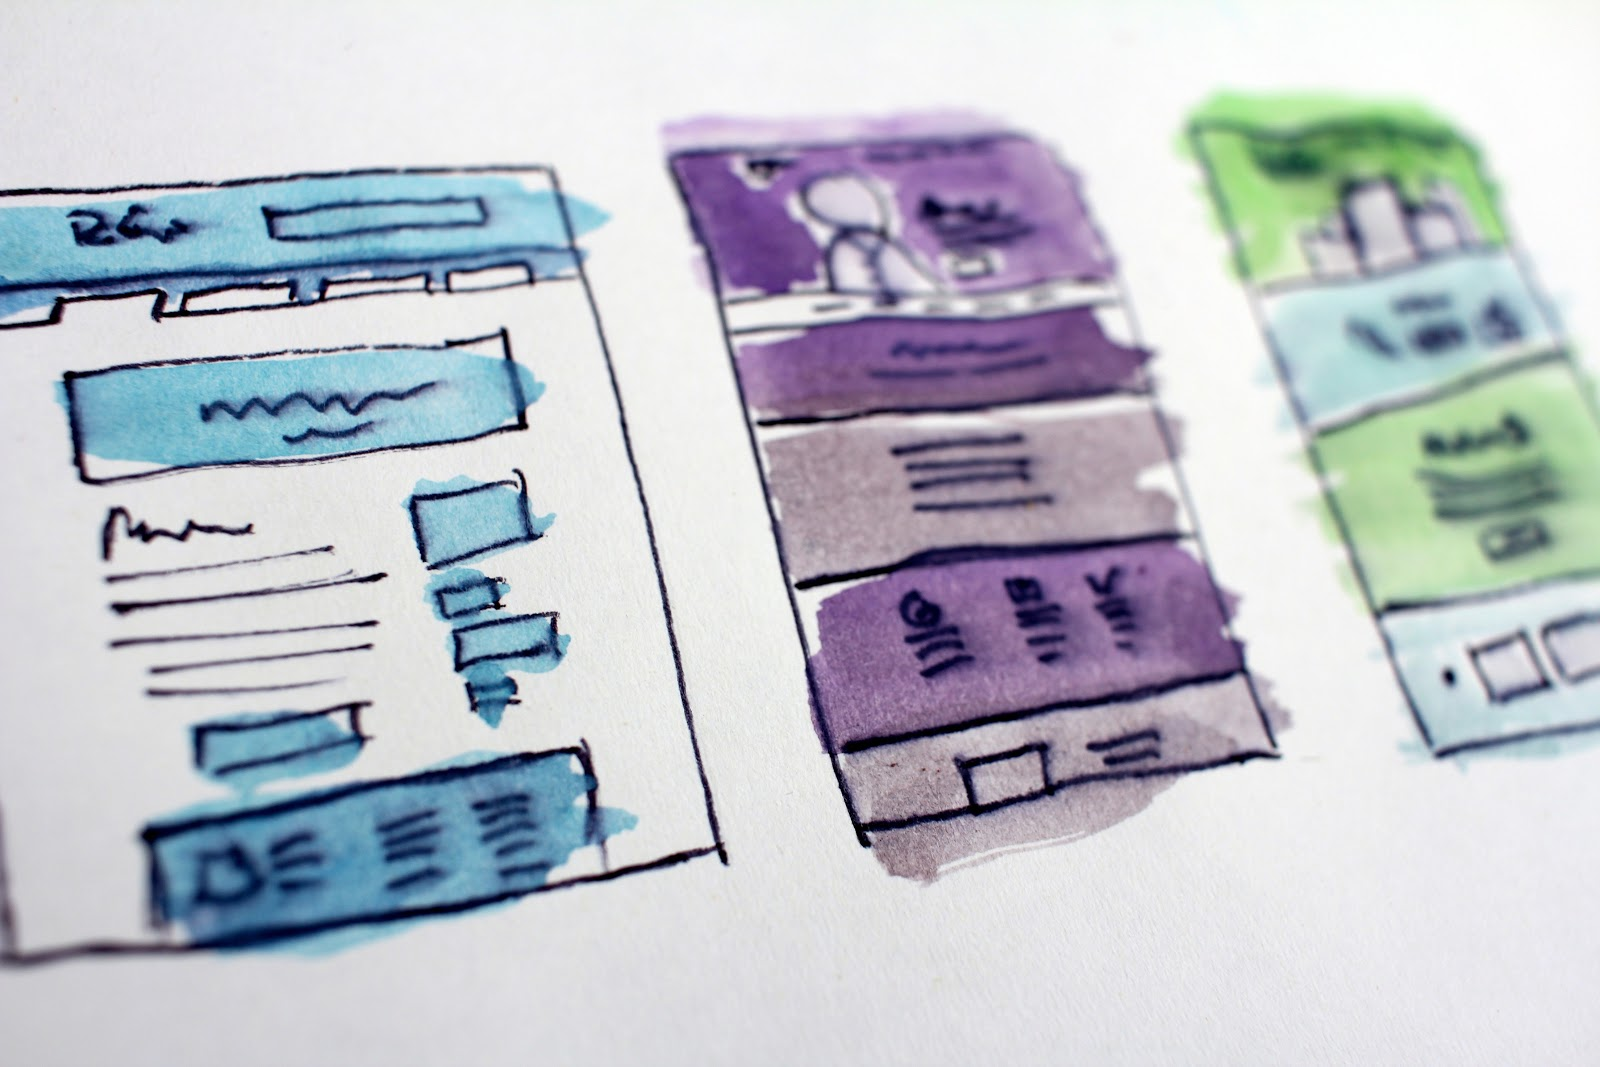 sketches of website layouts